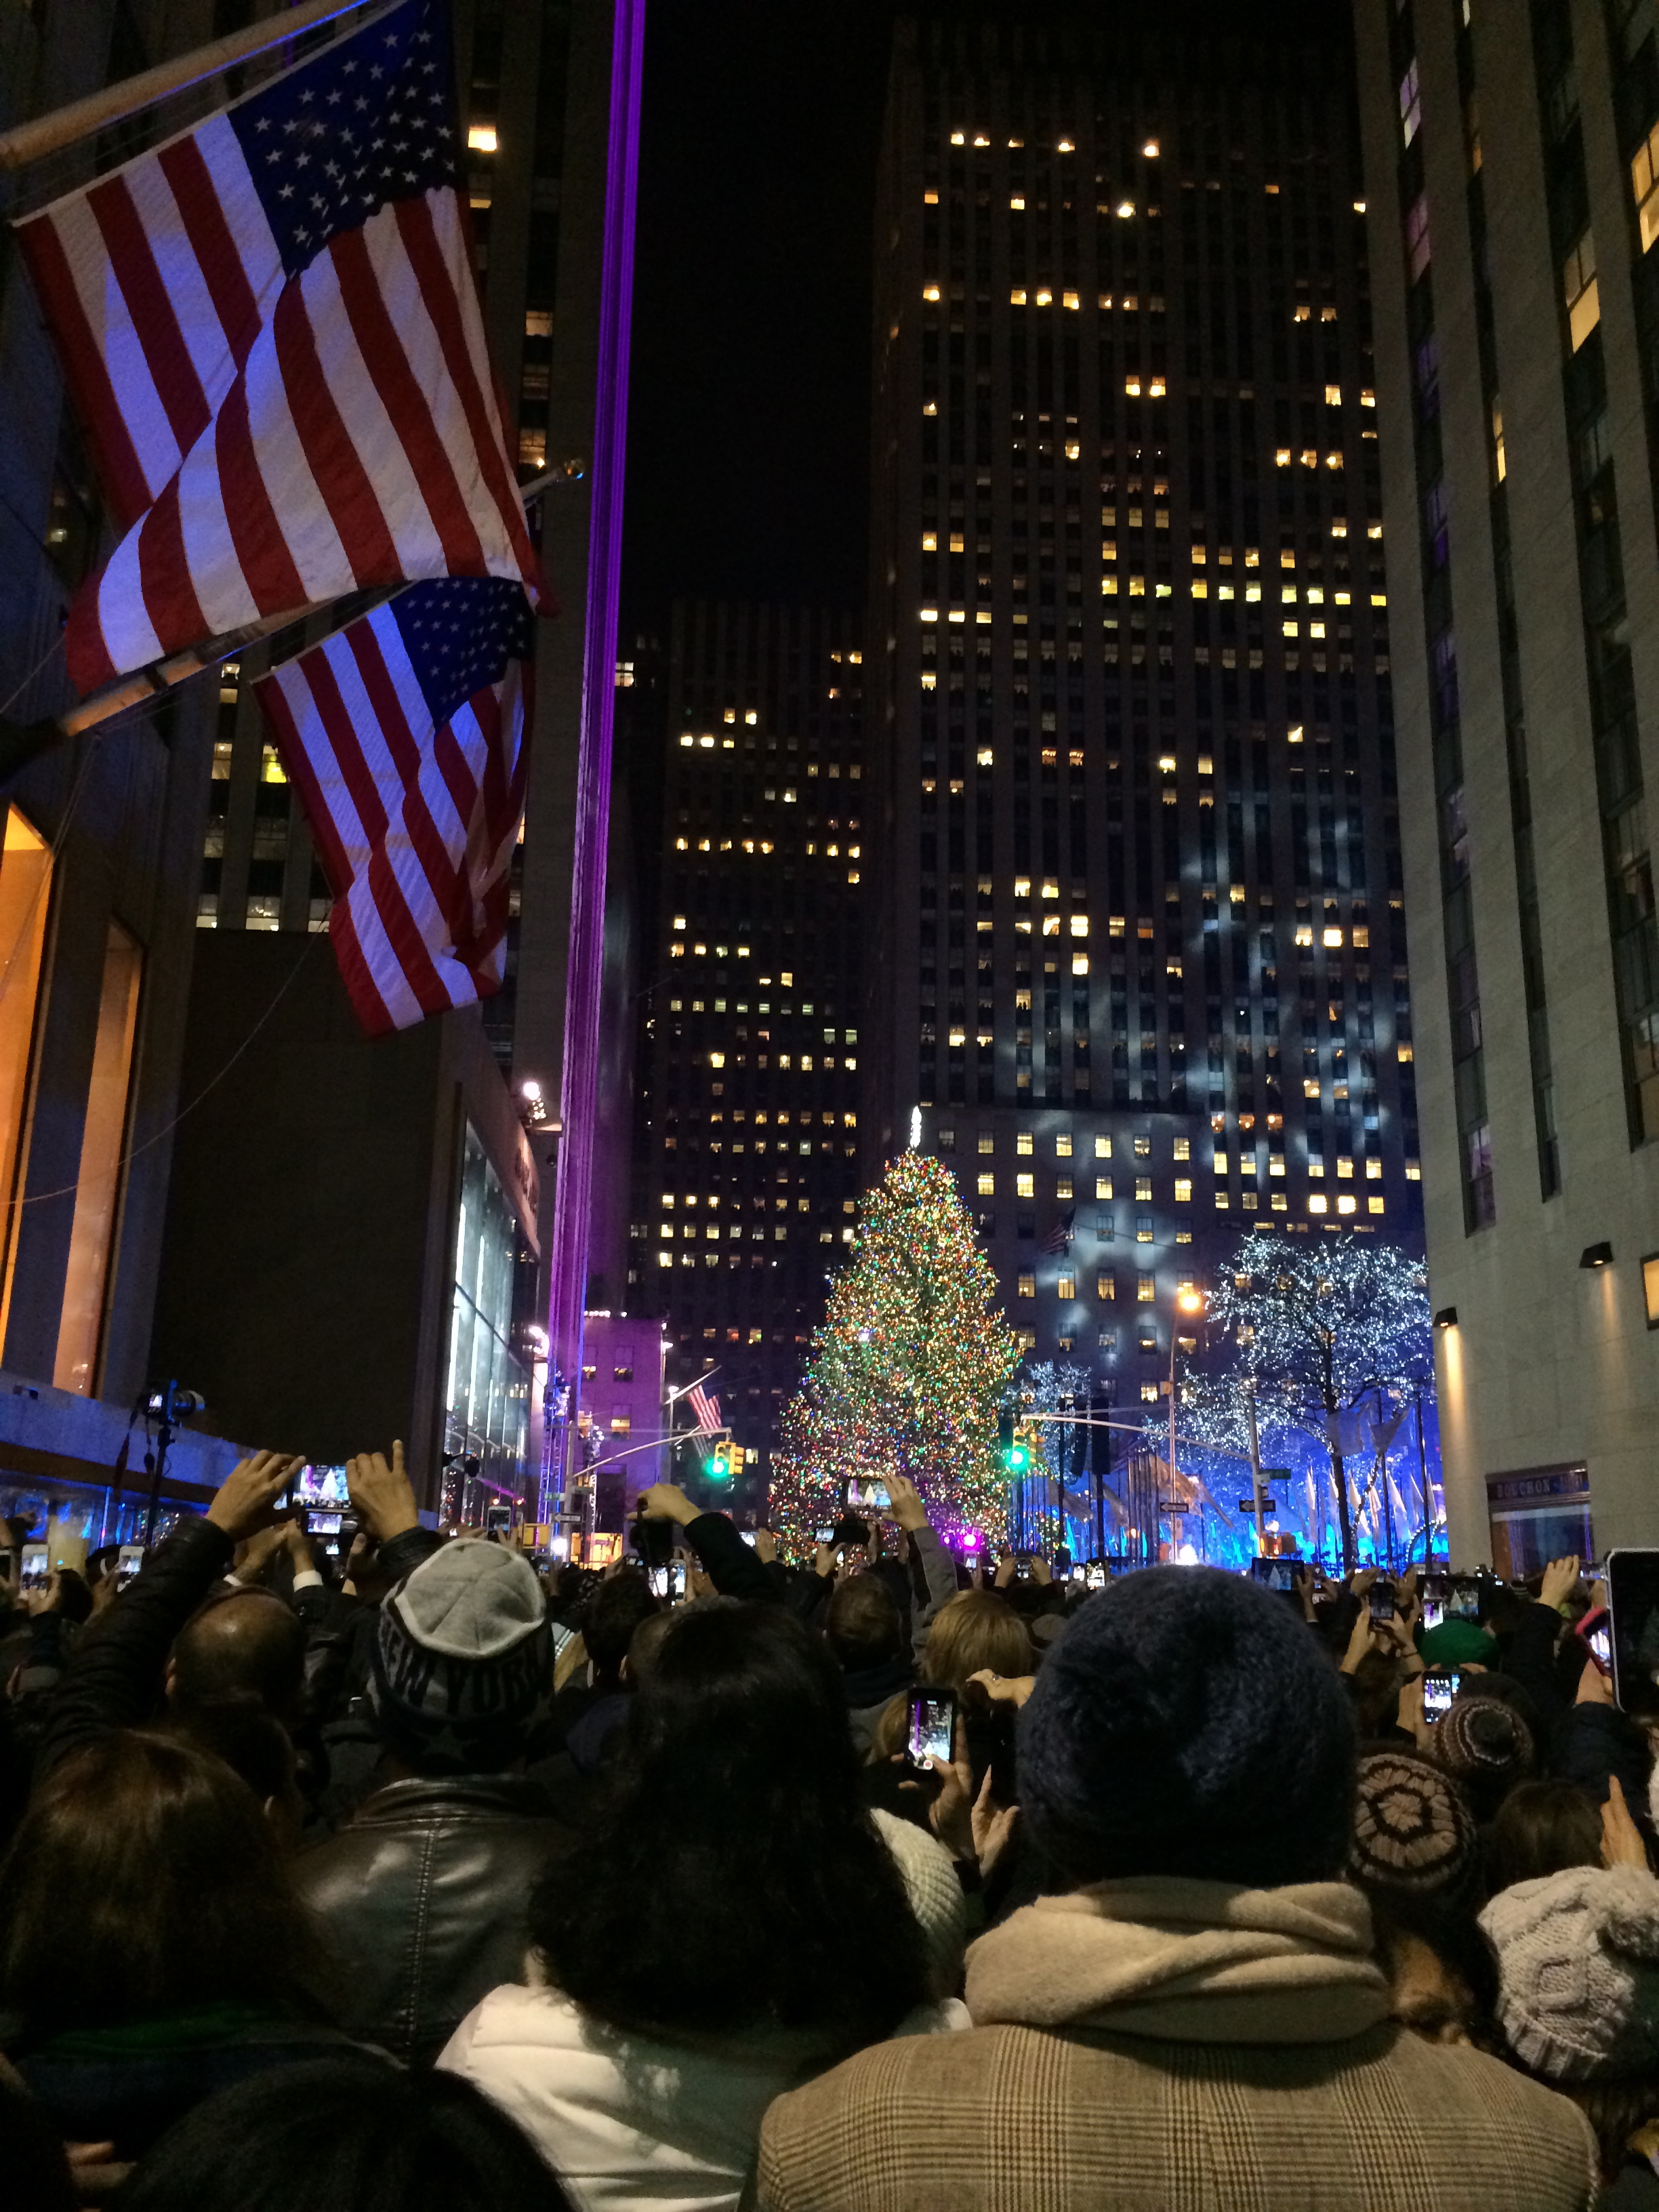 Rockefeller Tree Lighting December 4, 2013 744